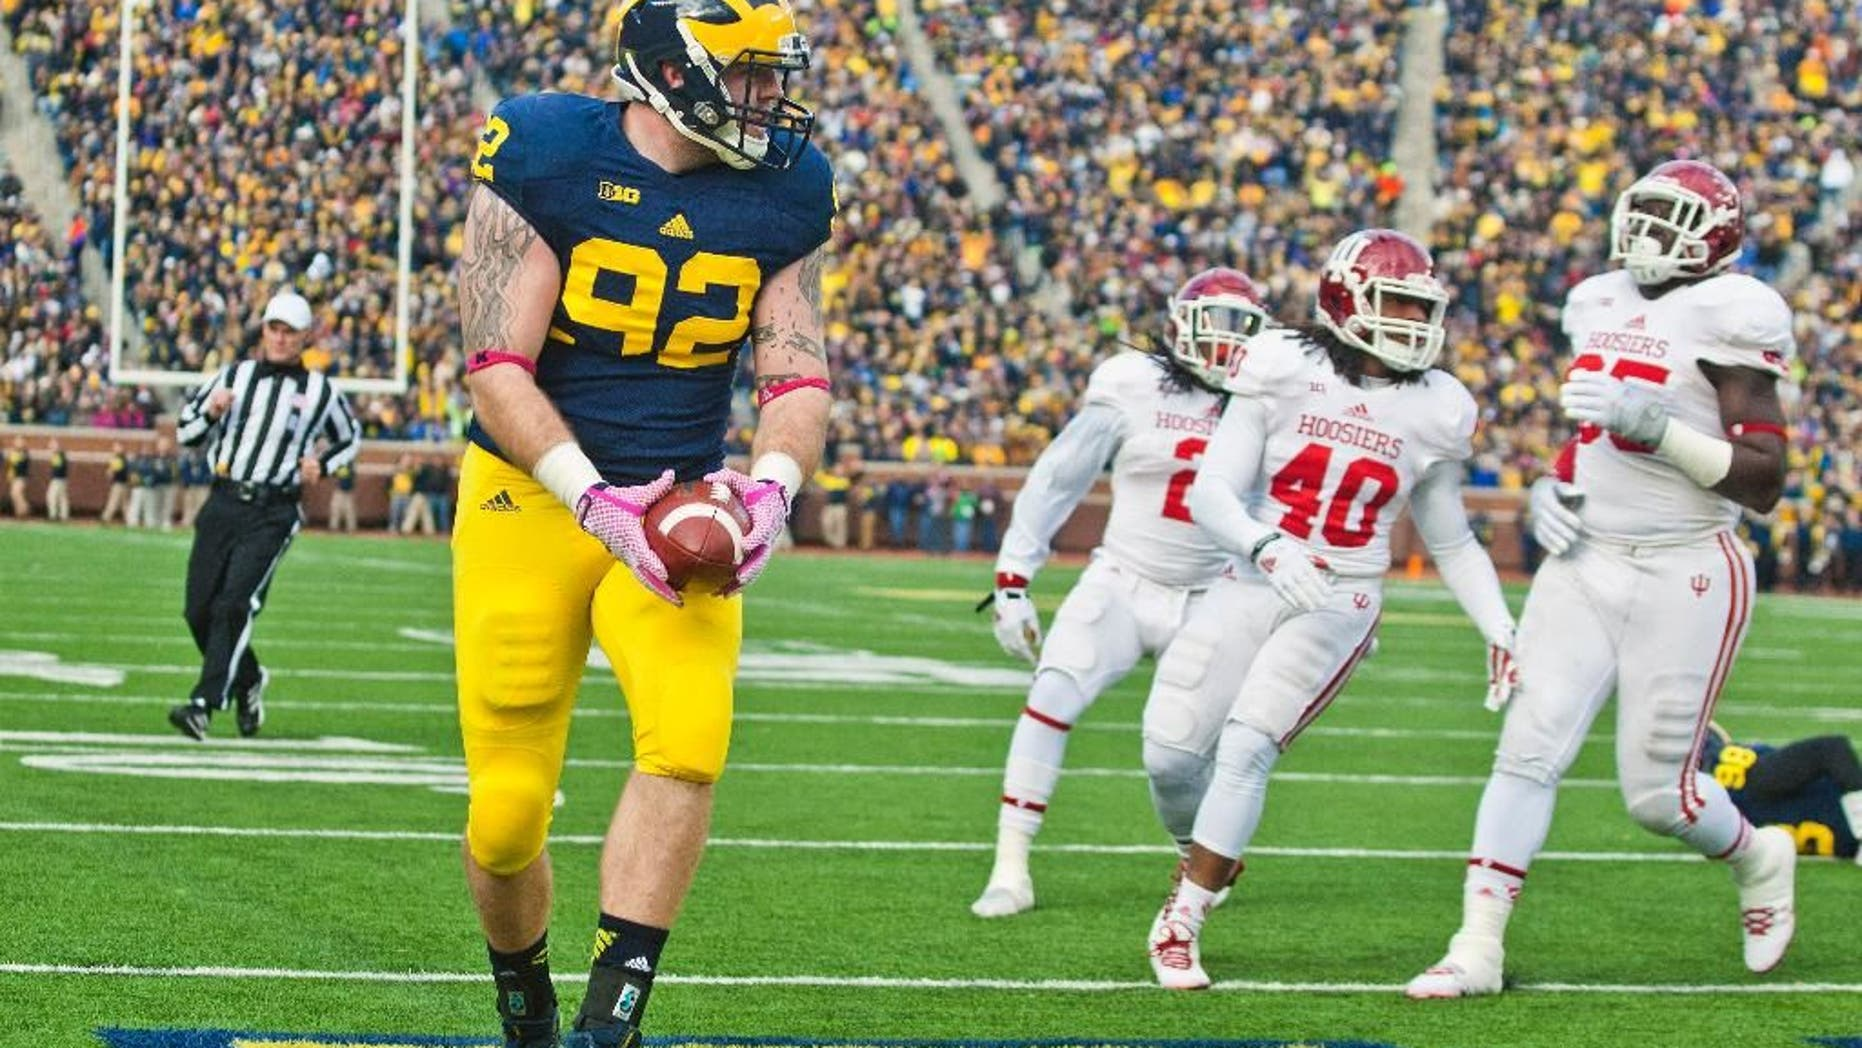 Indiana quarterback Zander Diamont (12) escapes a tackle while rushing with the ball in the third quarter of an NCAA college football game against Michigan in Ann Arbor, Mich., Saturday, Nov. 1, 2014. Michigan won 34-10. (AP Photo/Tony Ding)